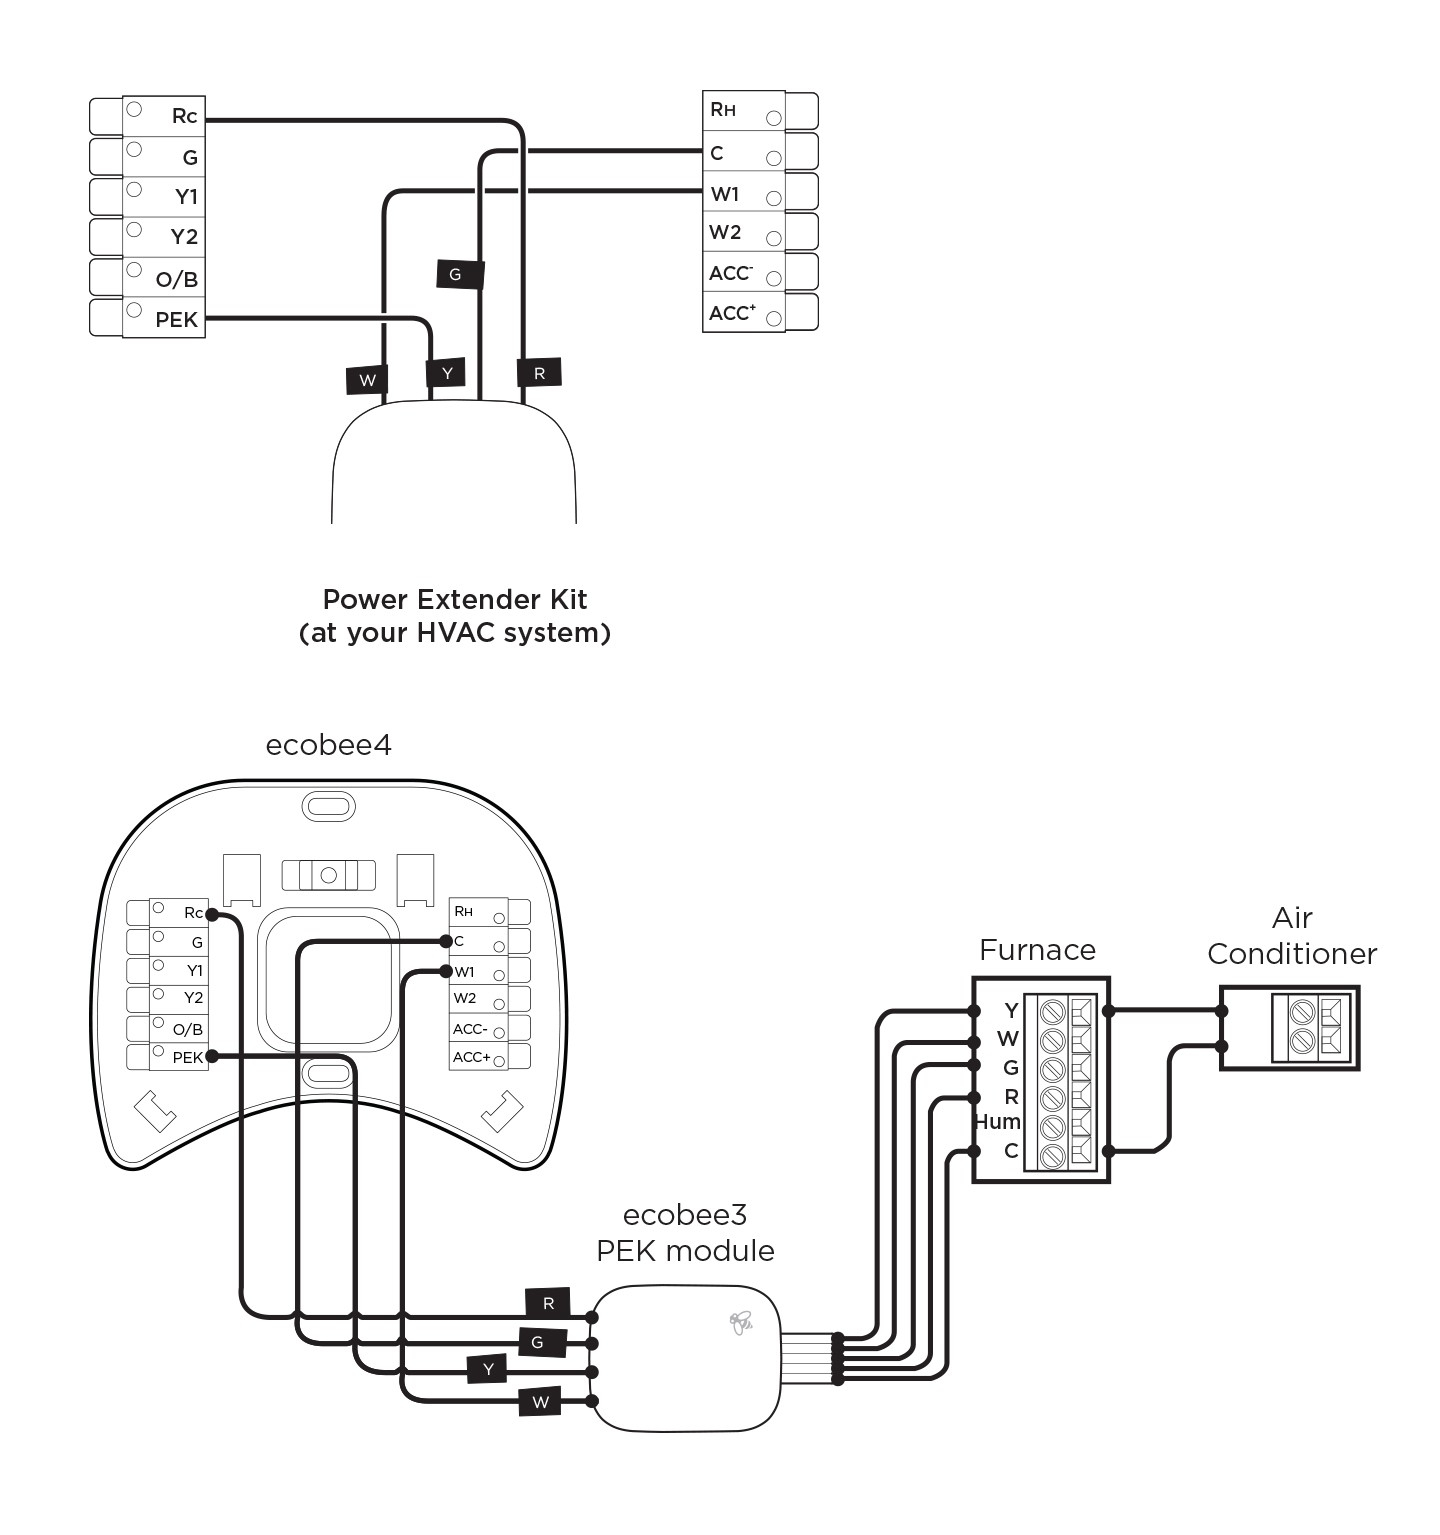 ecobee3 wiring diagram Collection-Ecobee3 Wiring Diagram New I M Upgrading From Ecobee3 to Ecobee4 What Wiring Changes Do I Need 2-t